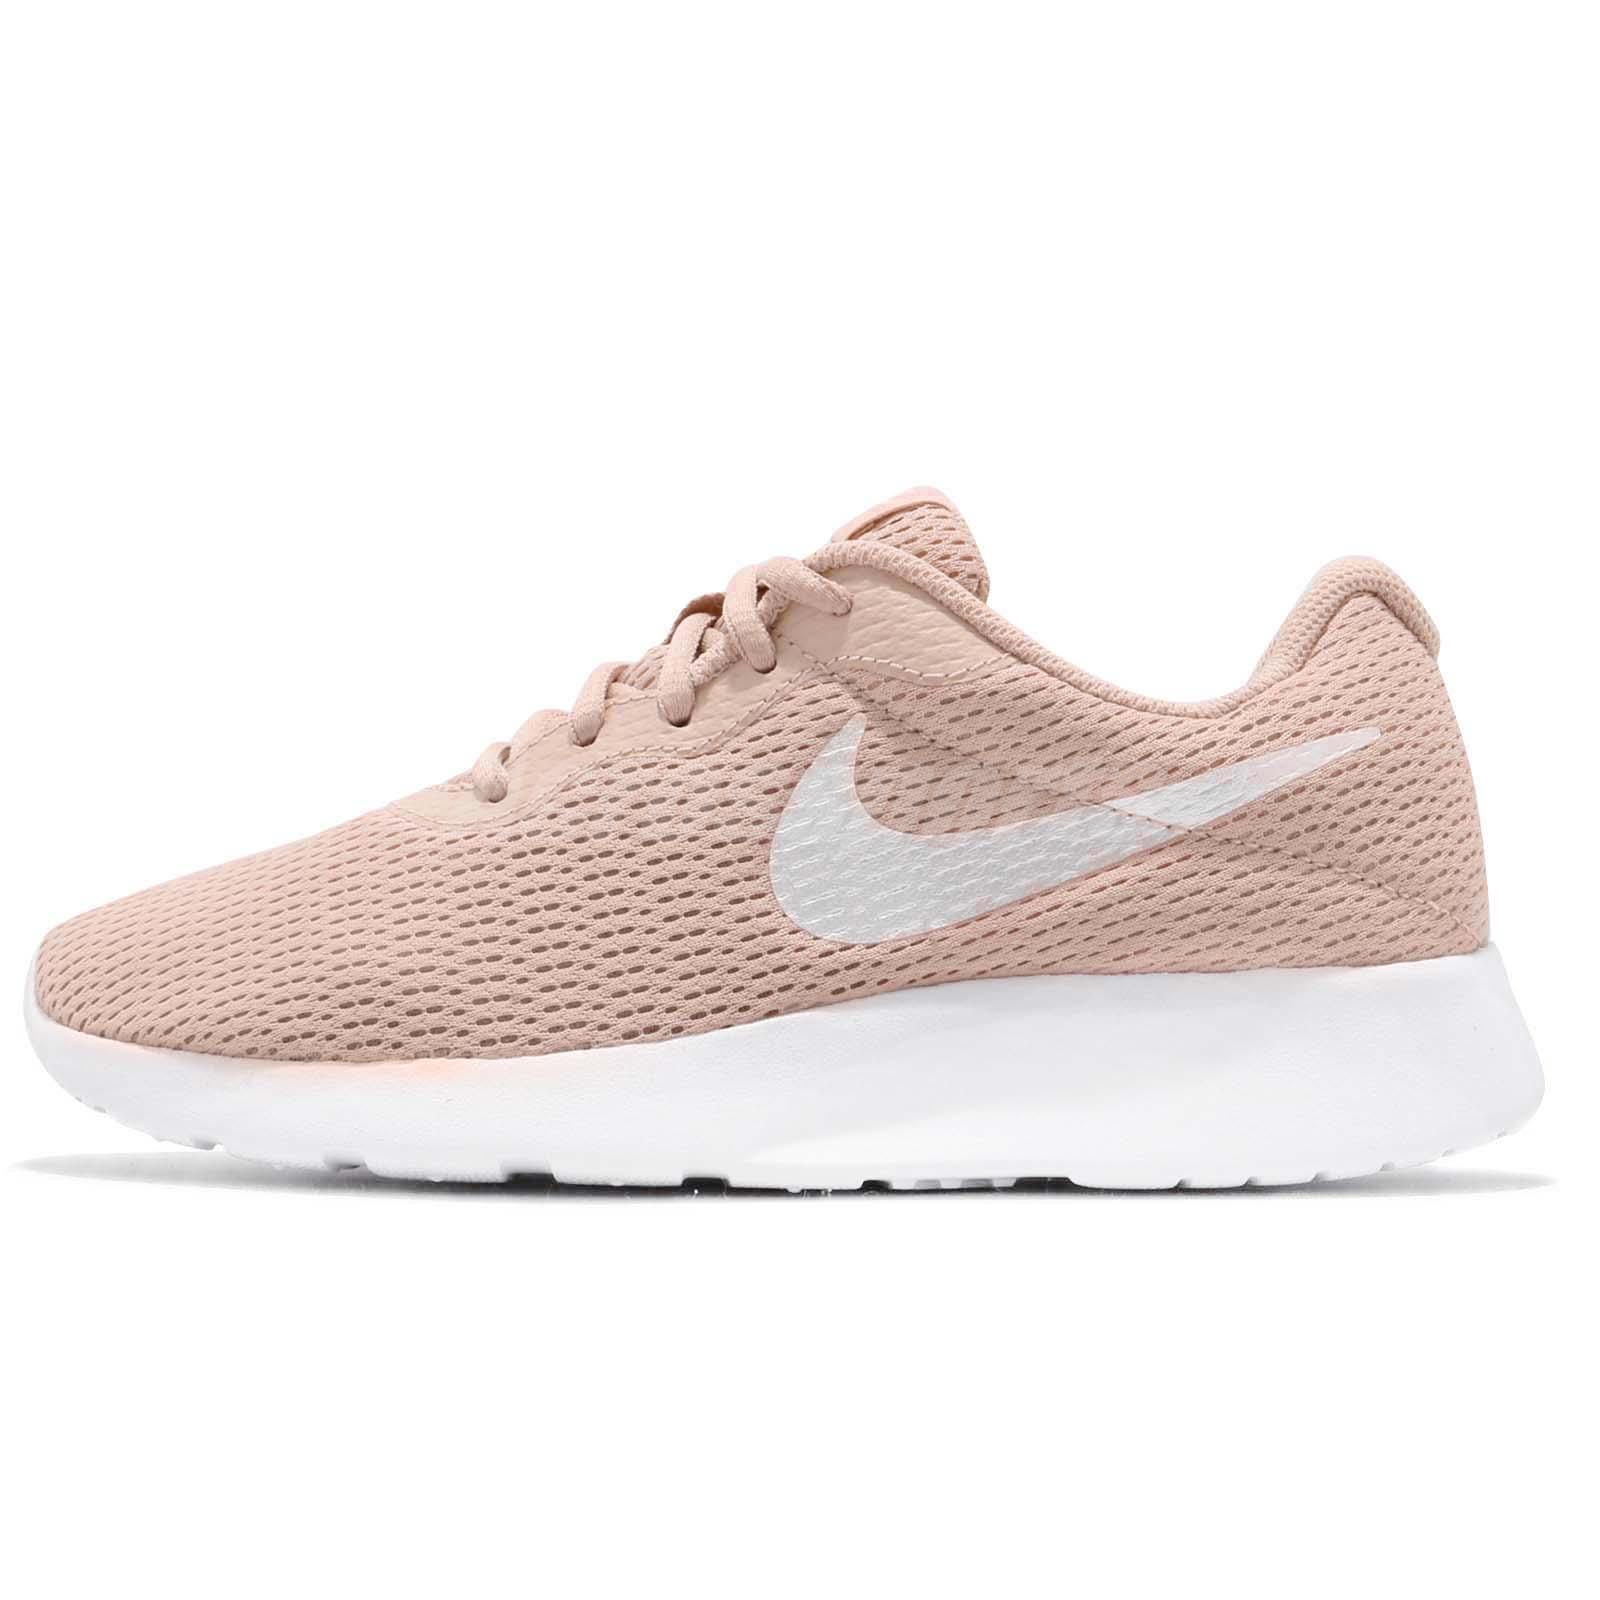 01d8e311358 Nike Wmns Tanjun Particle Beige White Women Running Shoes Sneakers 812655- 202